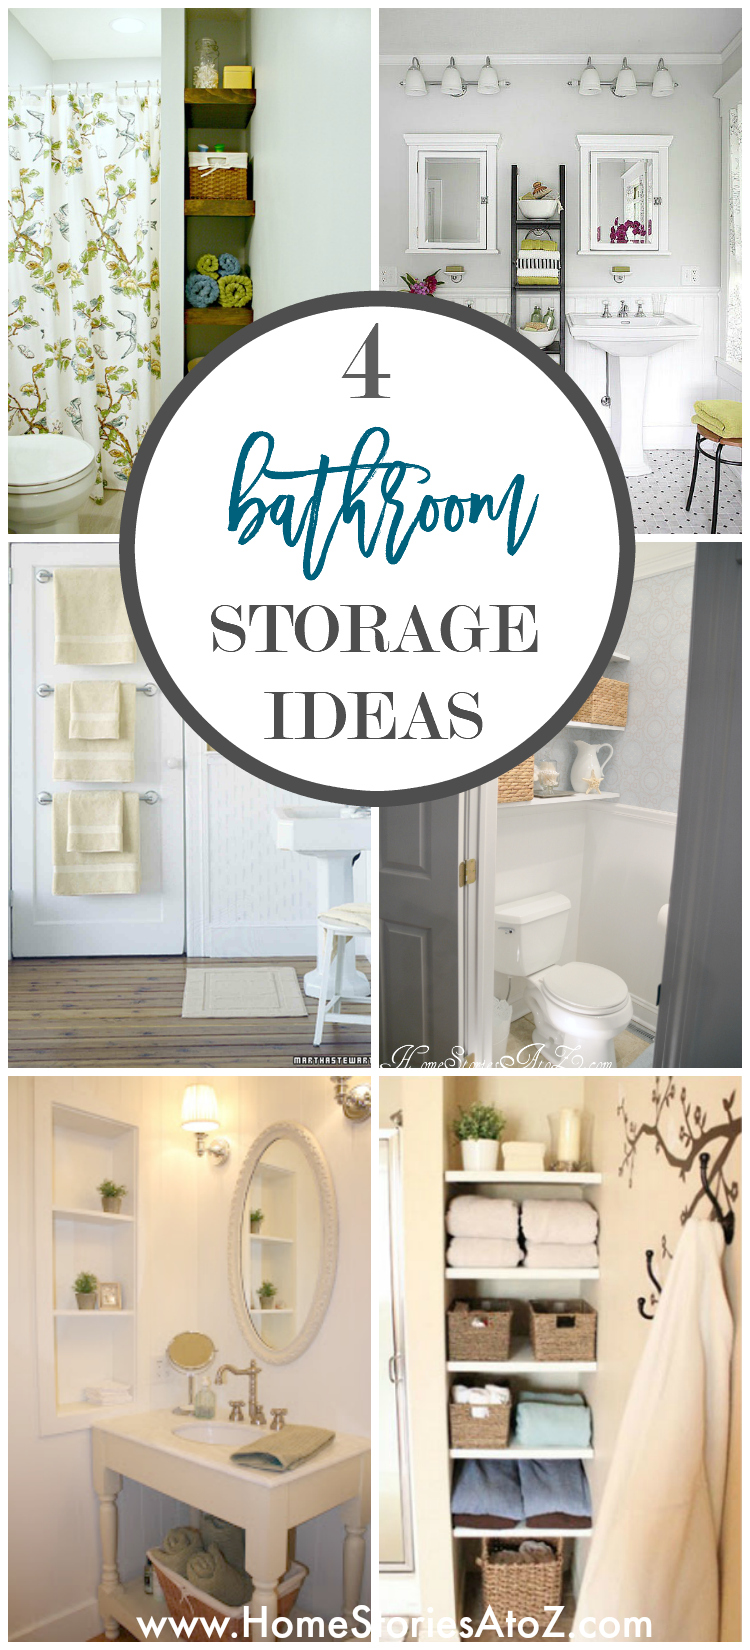 4 Tips to Creating More Bathroom Storage